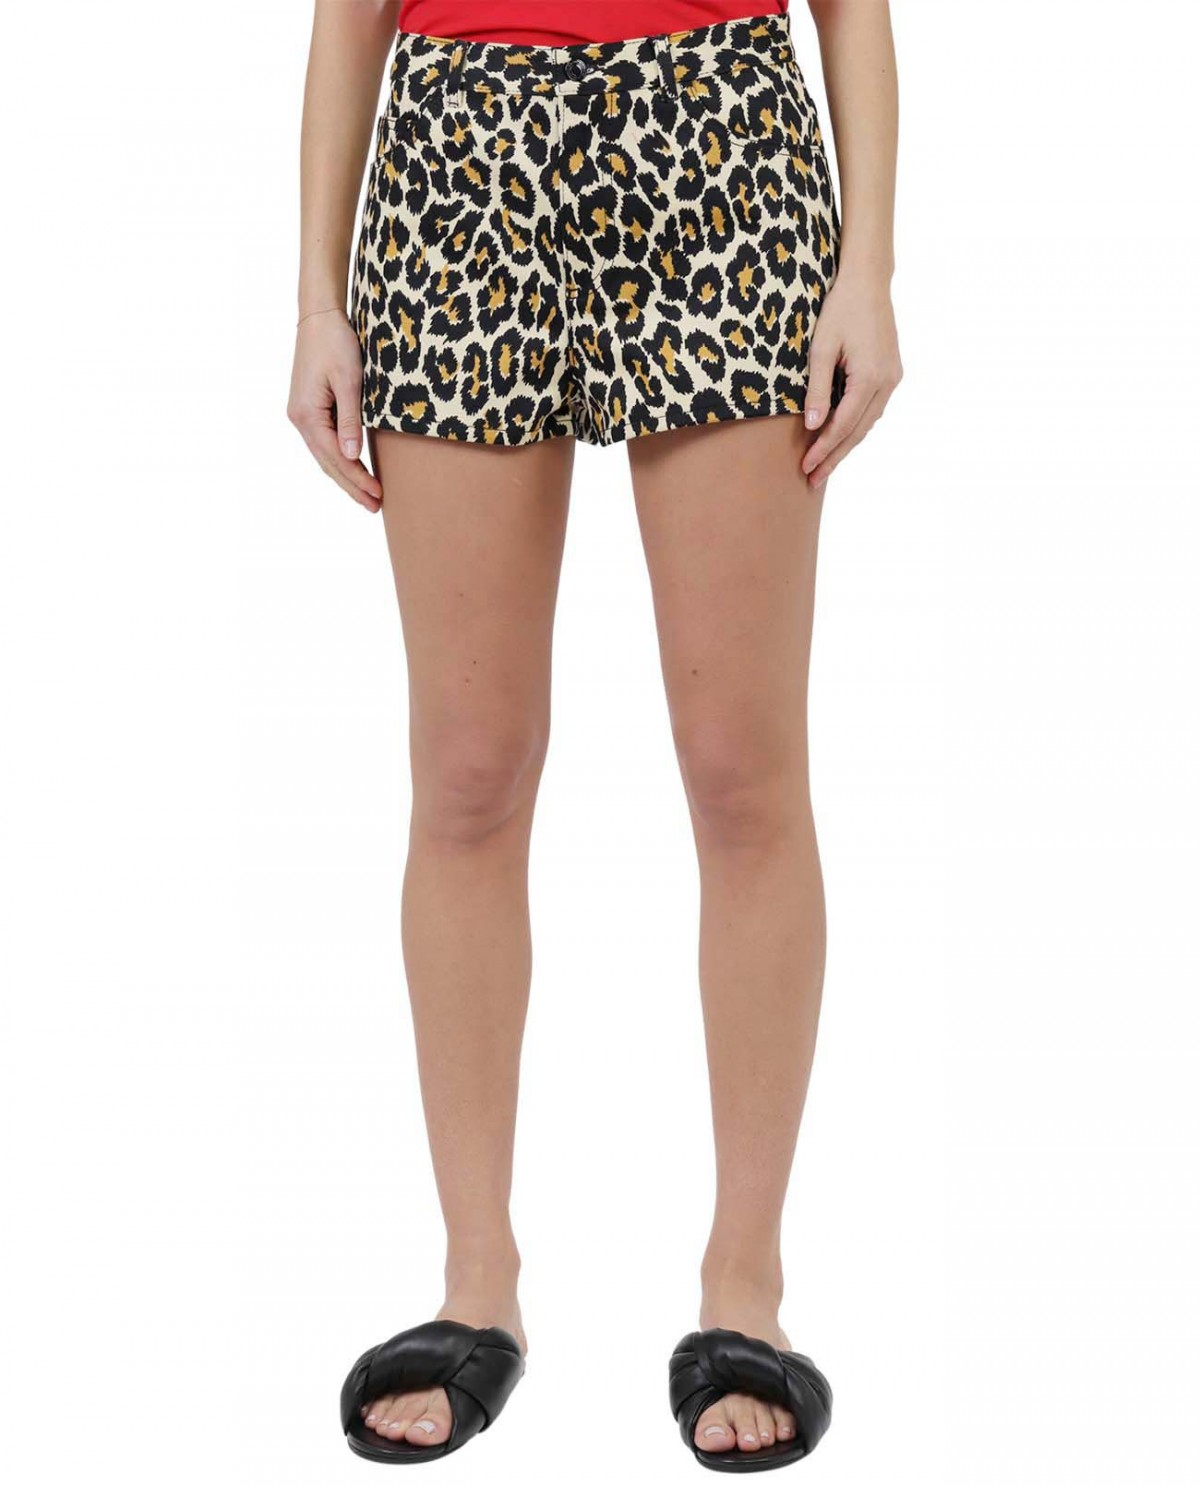 The Marc Jacobs leopard shorts